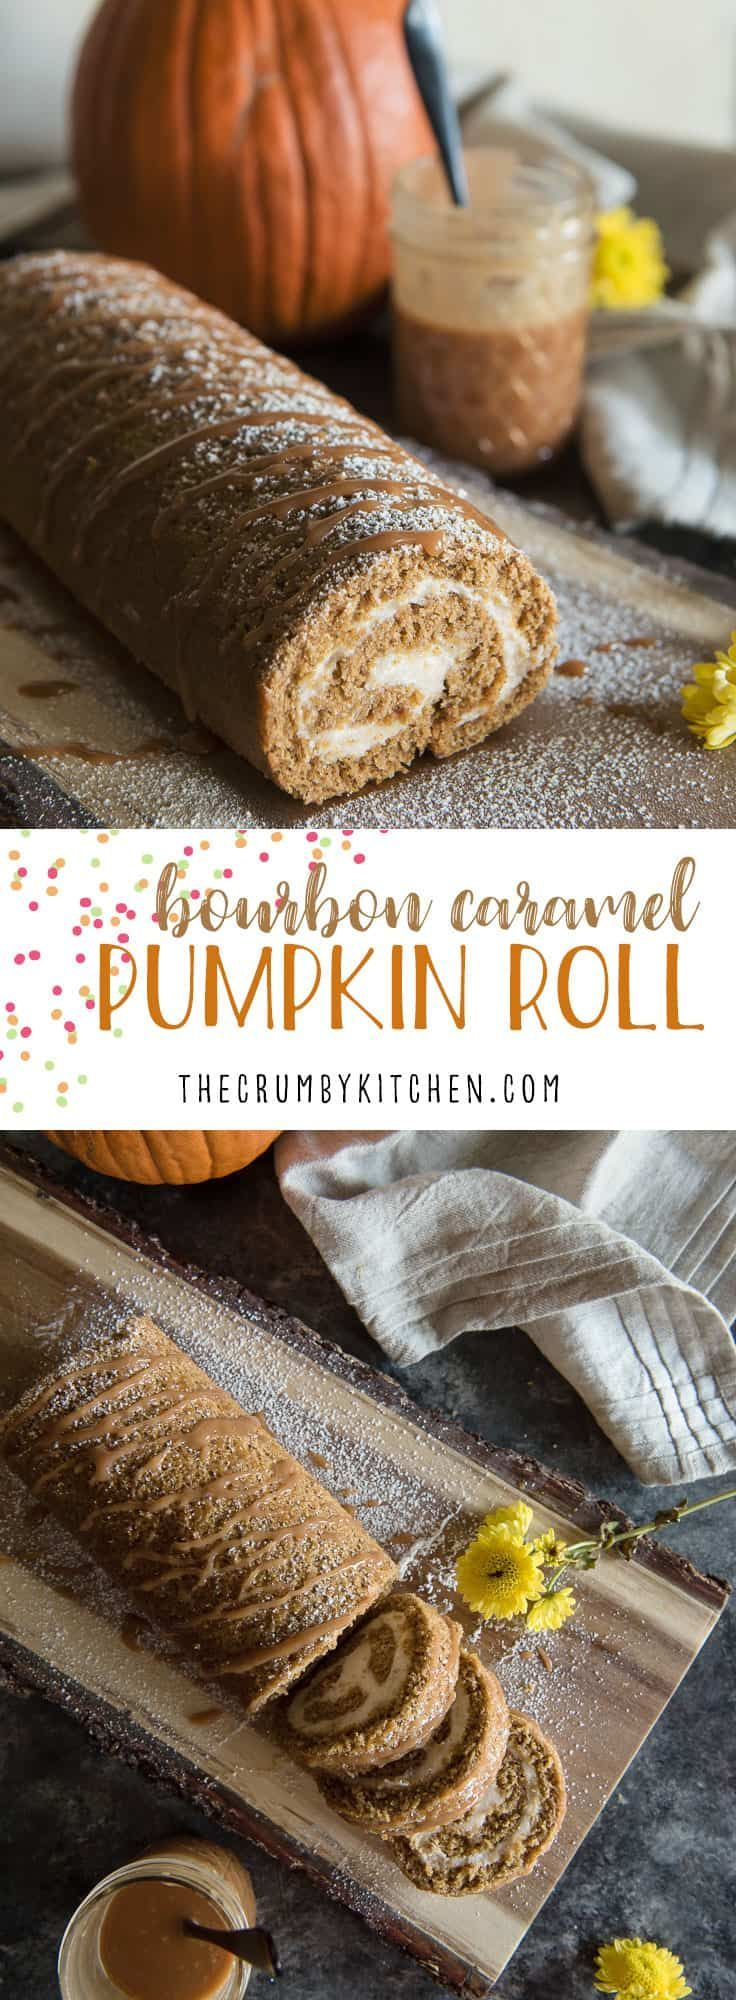 A fall treat with a boozy twist! This tender Bourbon Caramel Pumpkin Roll is filled with caramel cream cheese that's been kissed with bourbon whiskey, then drizzled with more caramel for good measure! #bourbon #caramel #creamcheese #pumpkin #pumpkinroll #fall #autumn #thanksgiving #cake #dessert #recipe #cakeroll